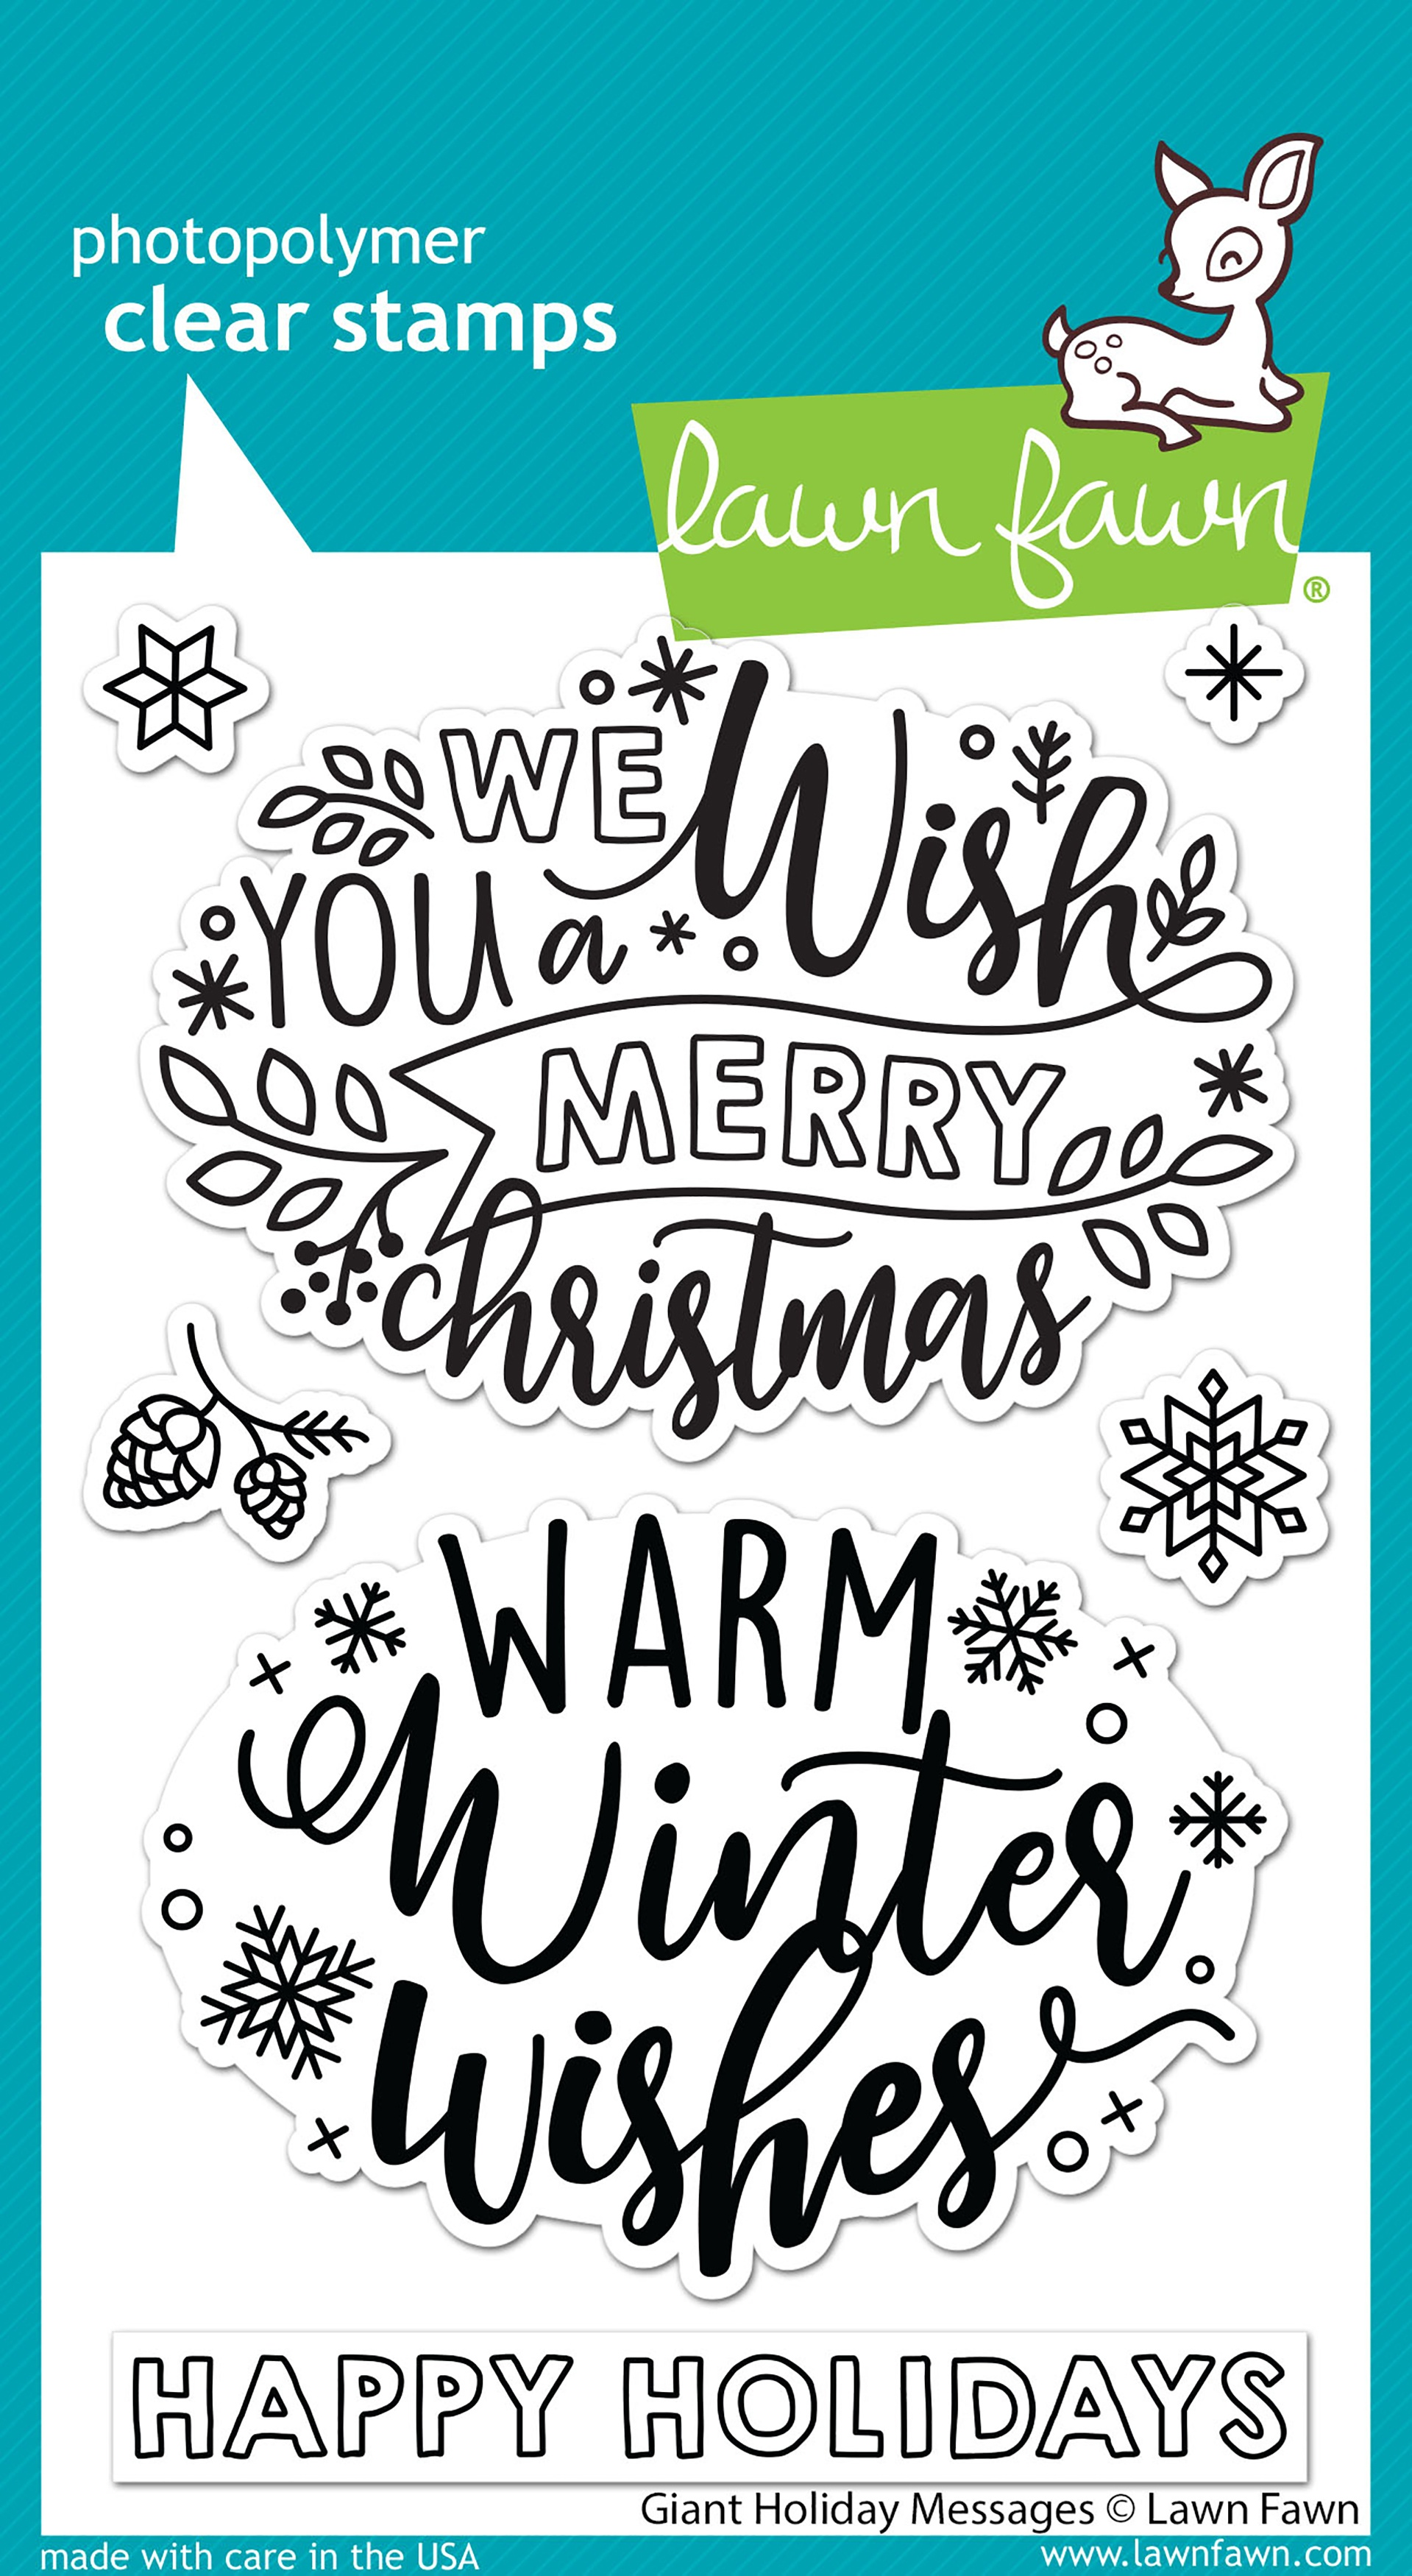 Lawn Fawn - Clear Stamps - Giant Holiday Messages